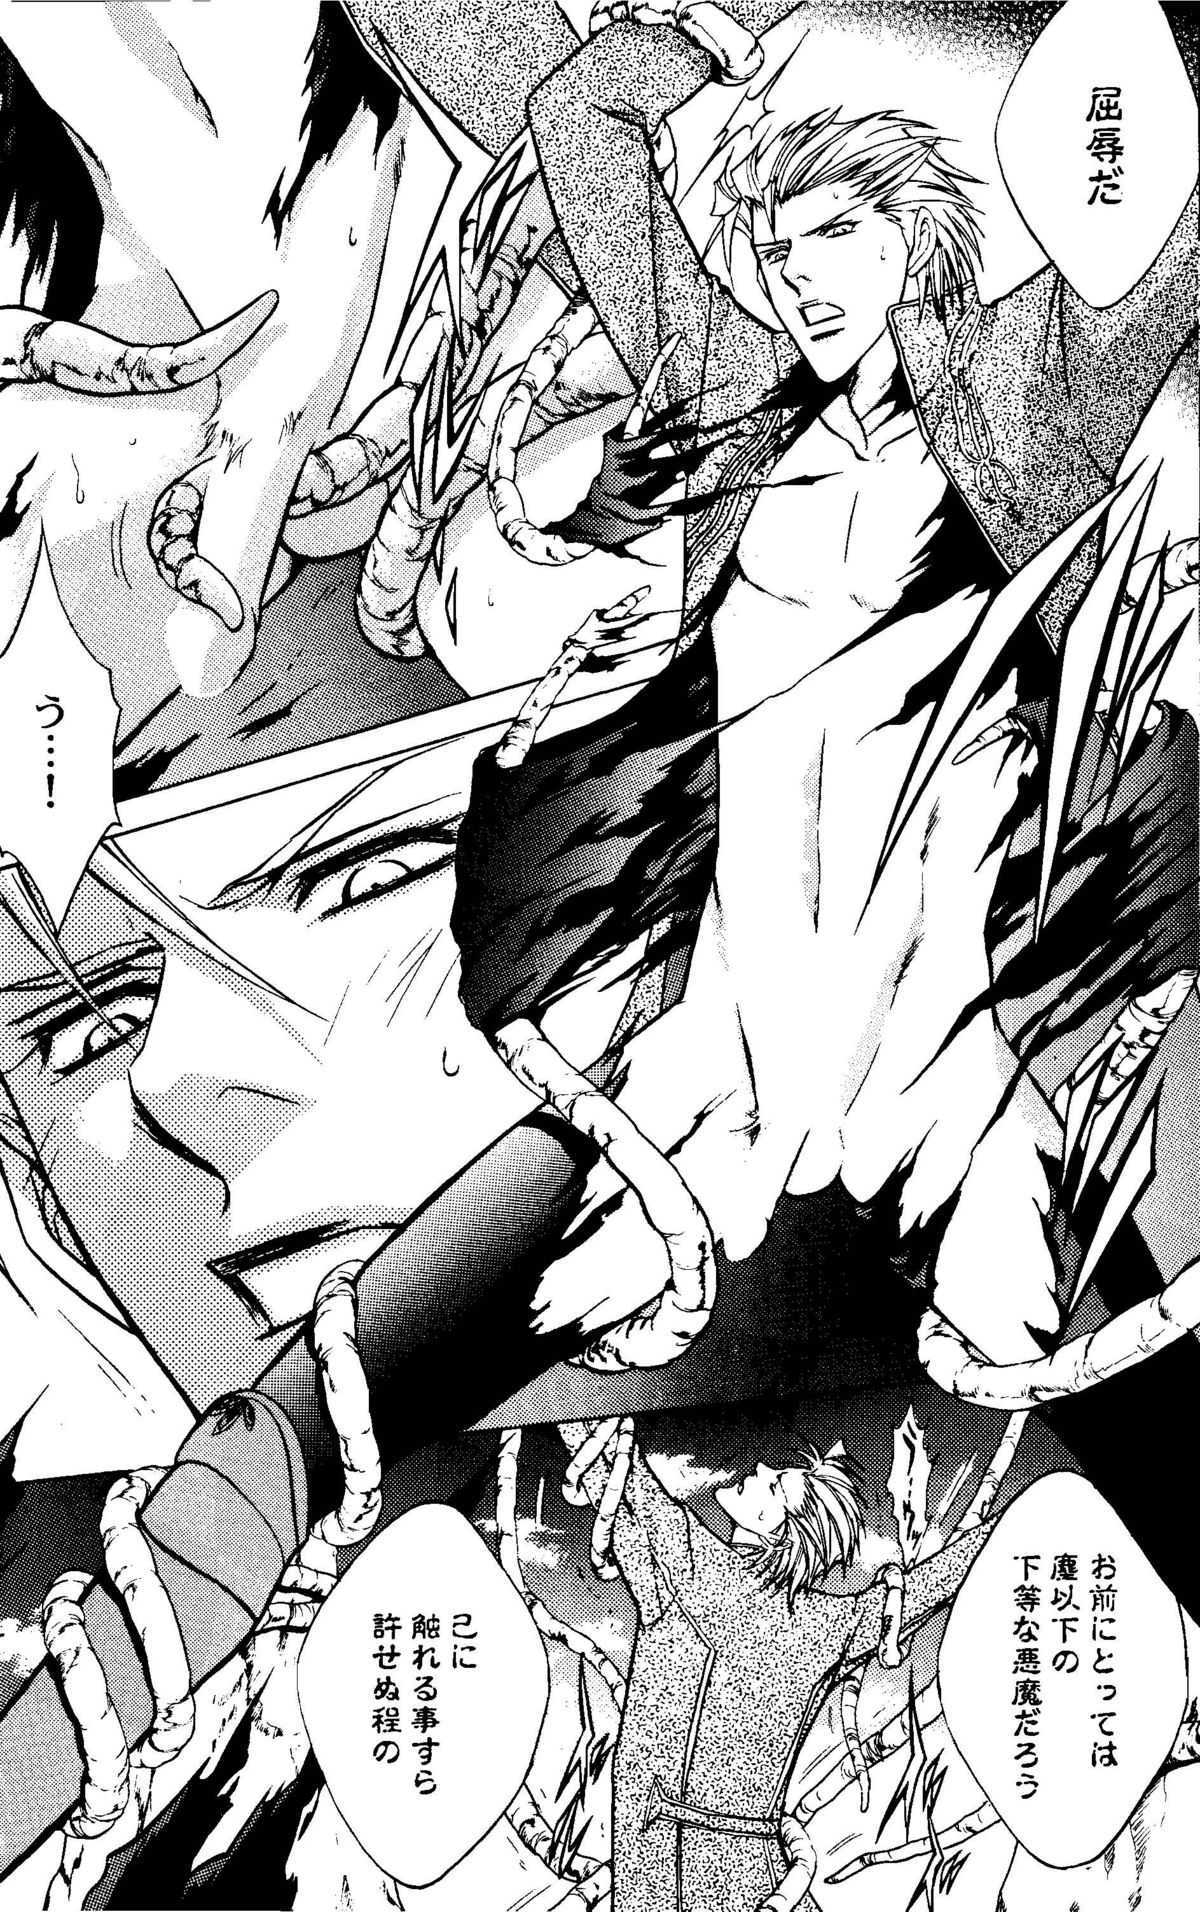 death not free hentai doujinshi congratulate, what necessary words